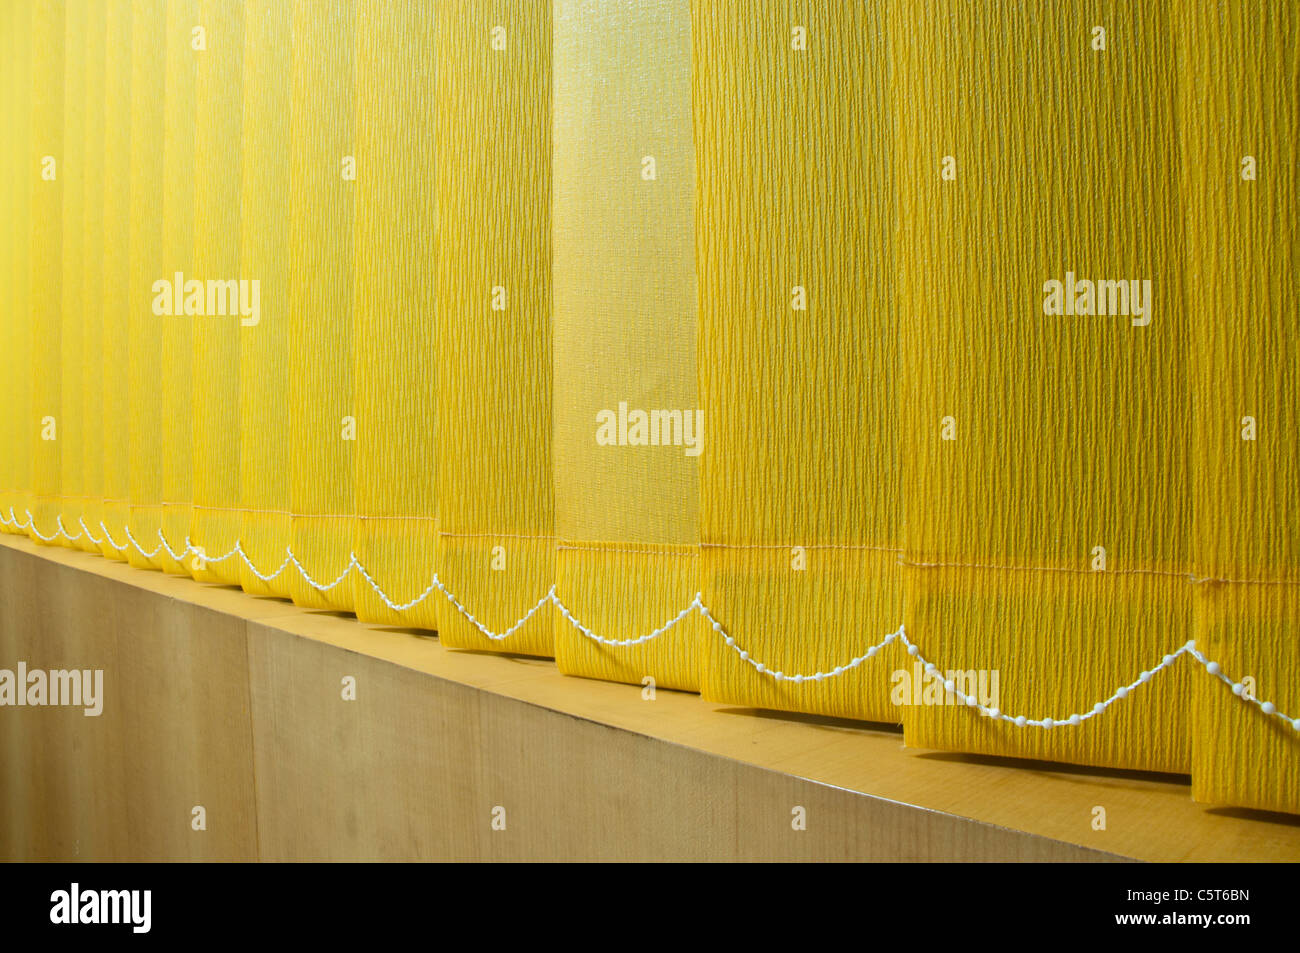 Closed venetian blinds in office - Stock Image